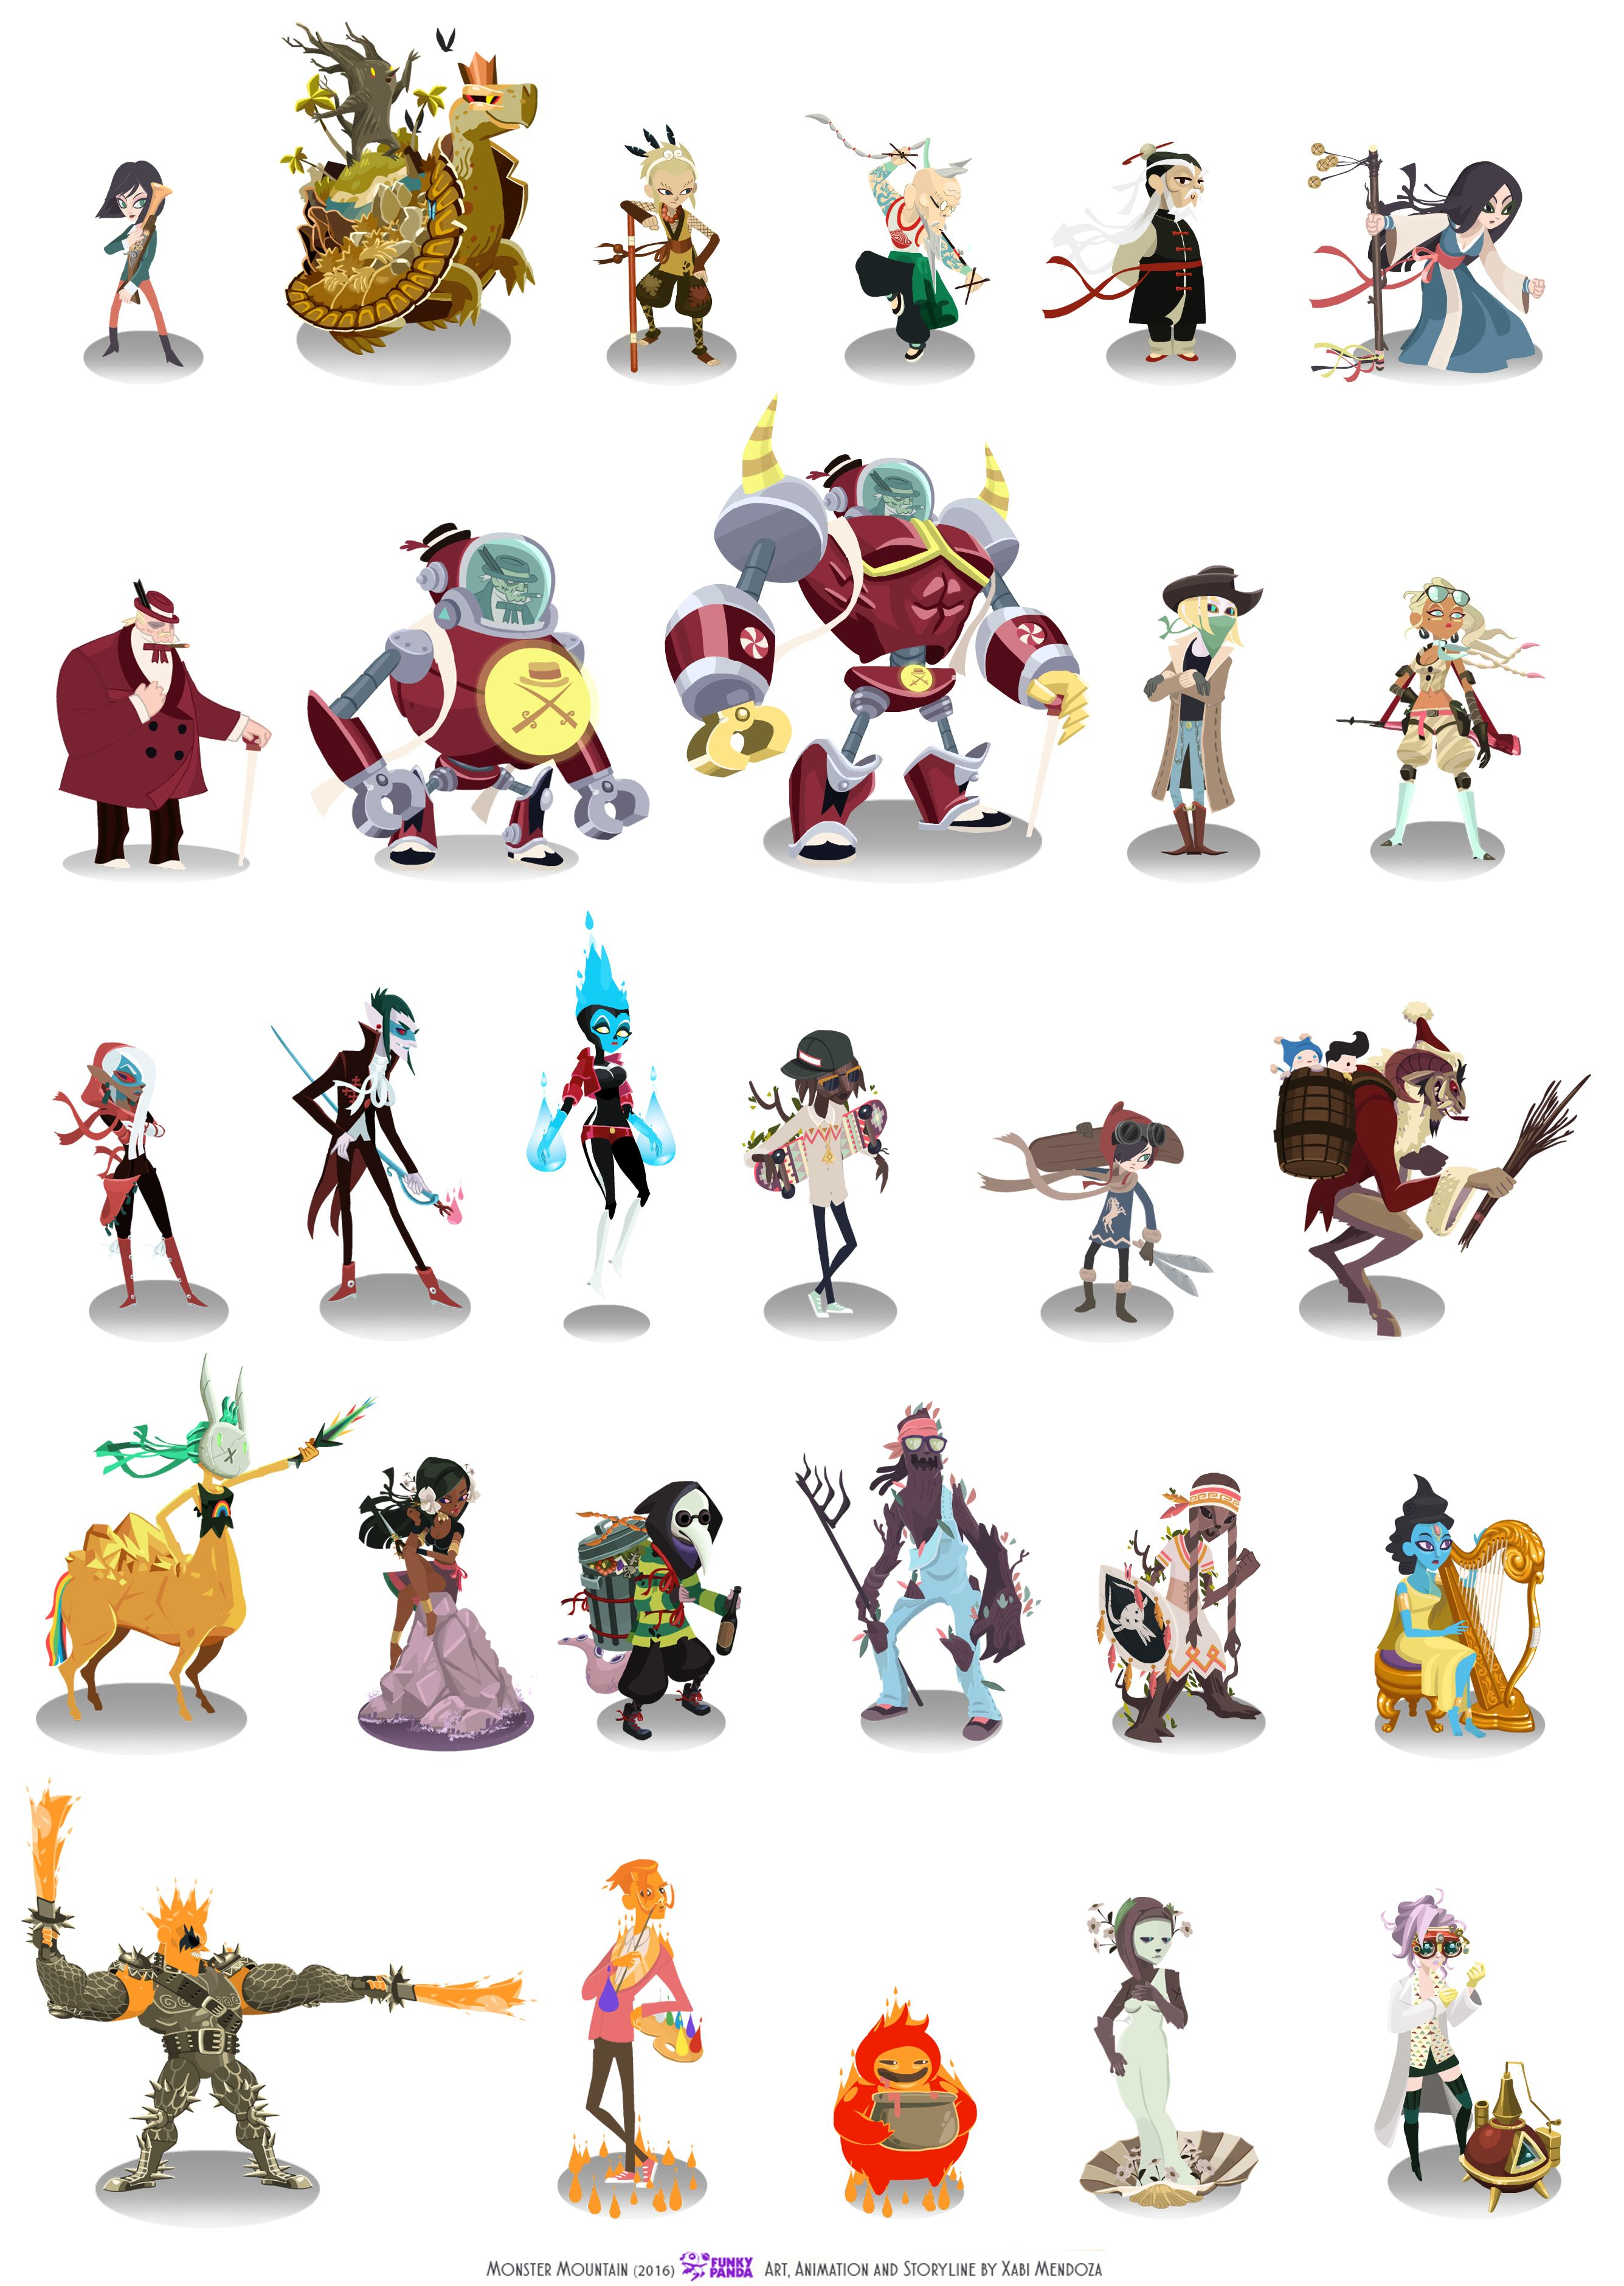 Character Design For Video Games Artworks By Xabi Mendoza For Monster Mountain An Rpg For Mobile Devi Character Design Game Icon Design Concept Art Characters